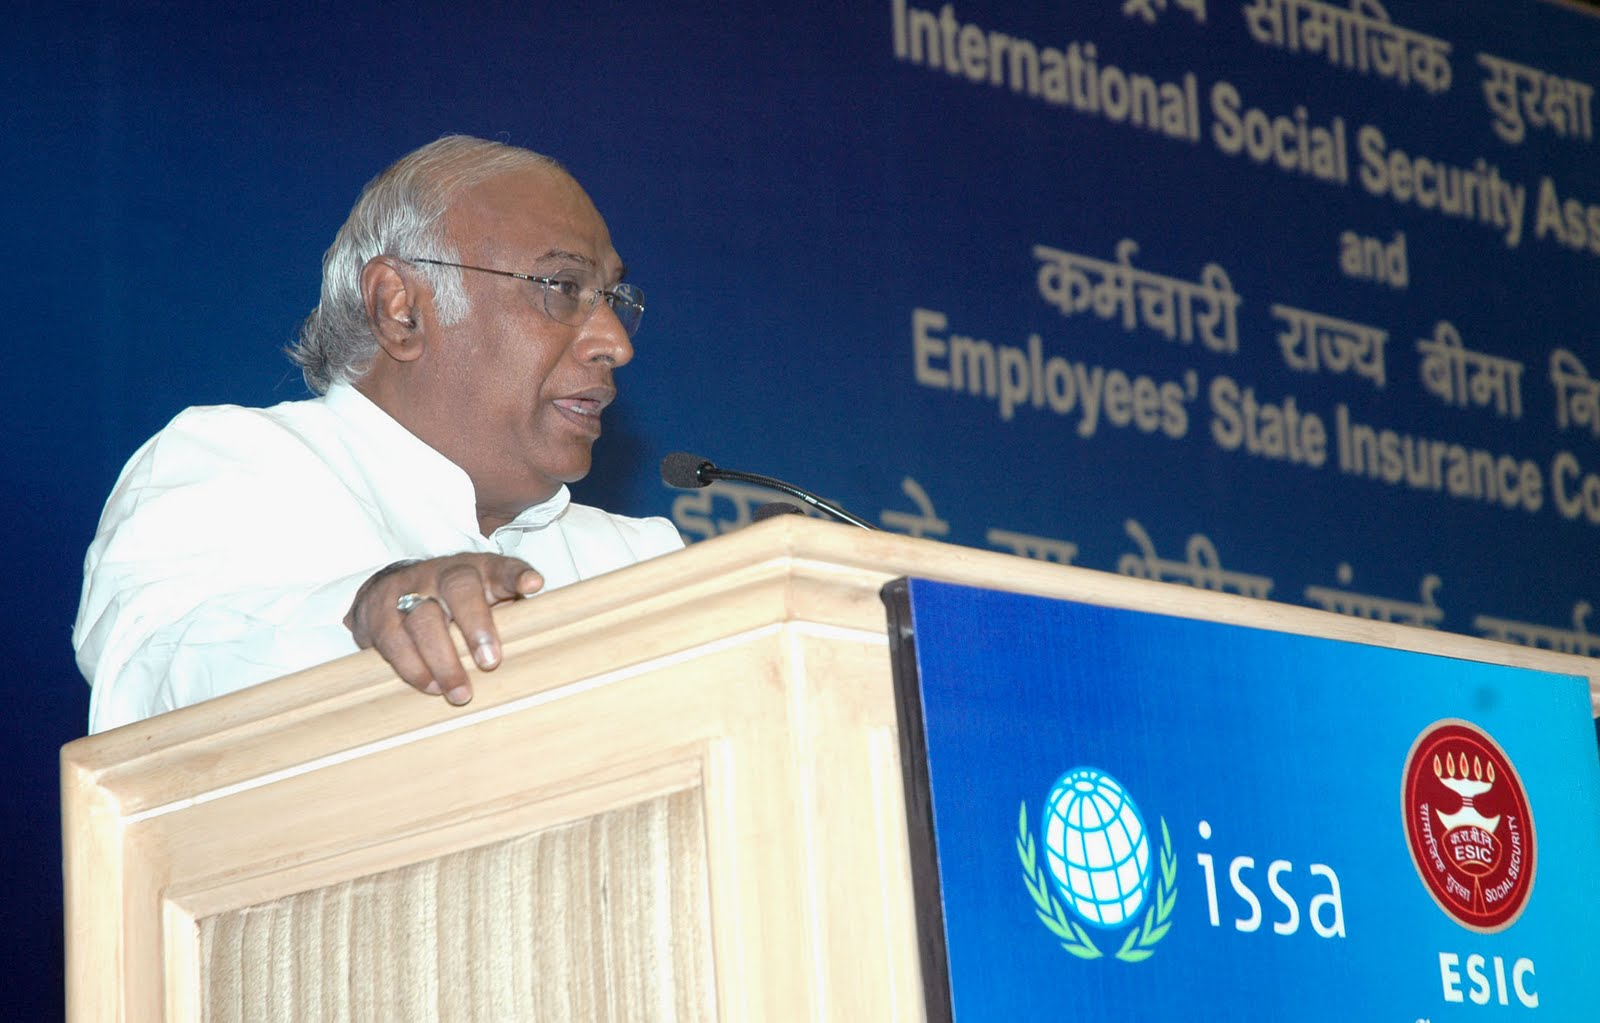 Mallikarjun Kharge, Union Minister for Labour